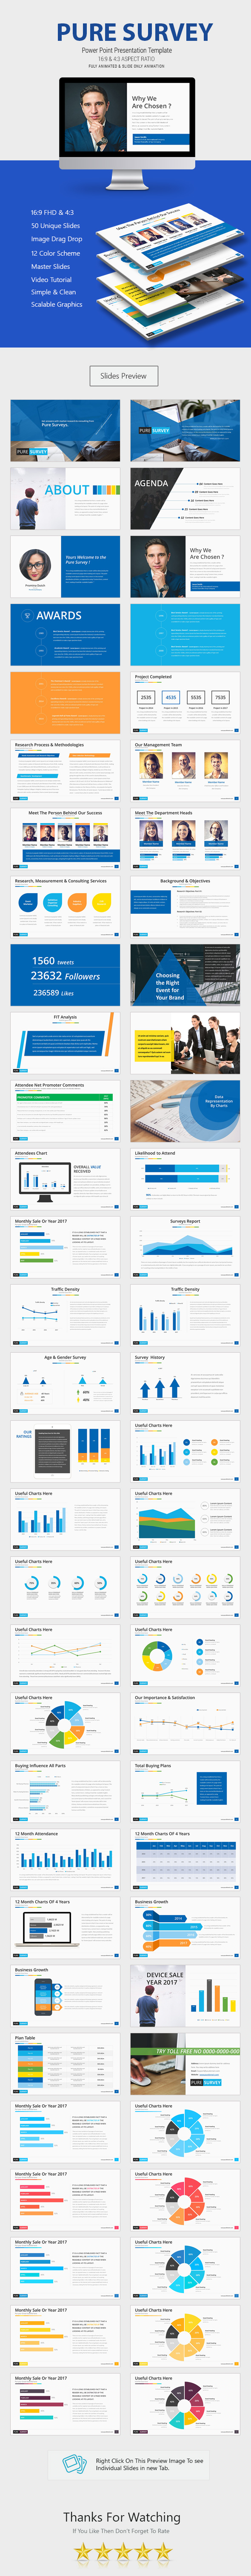 Pure Survey Power Point Presentation - Business PowerPoint Templates